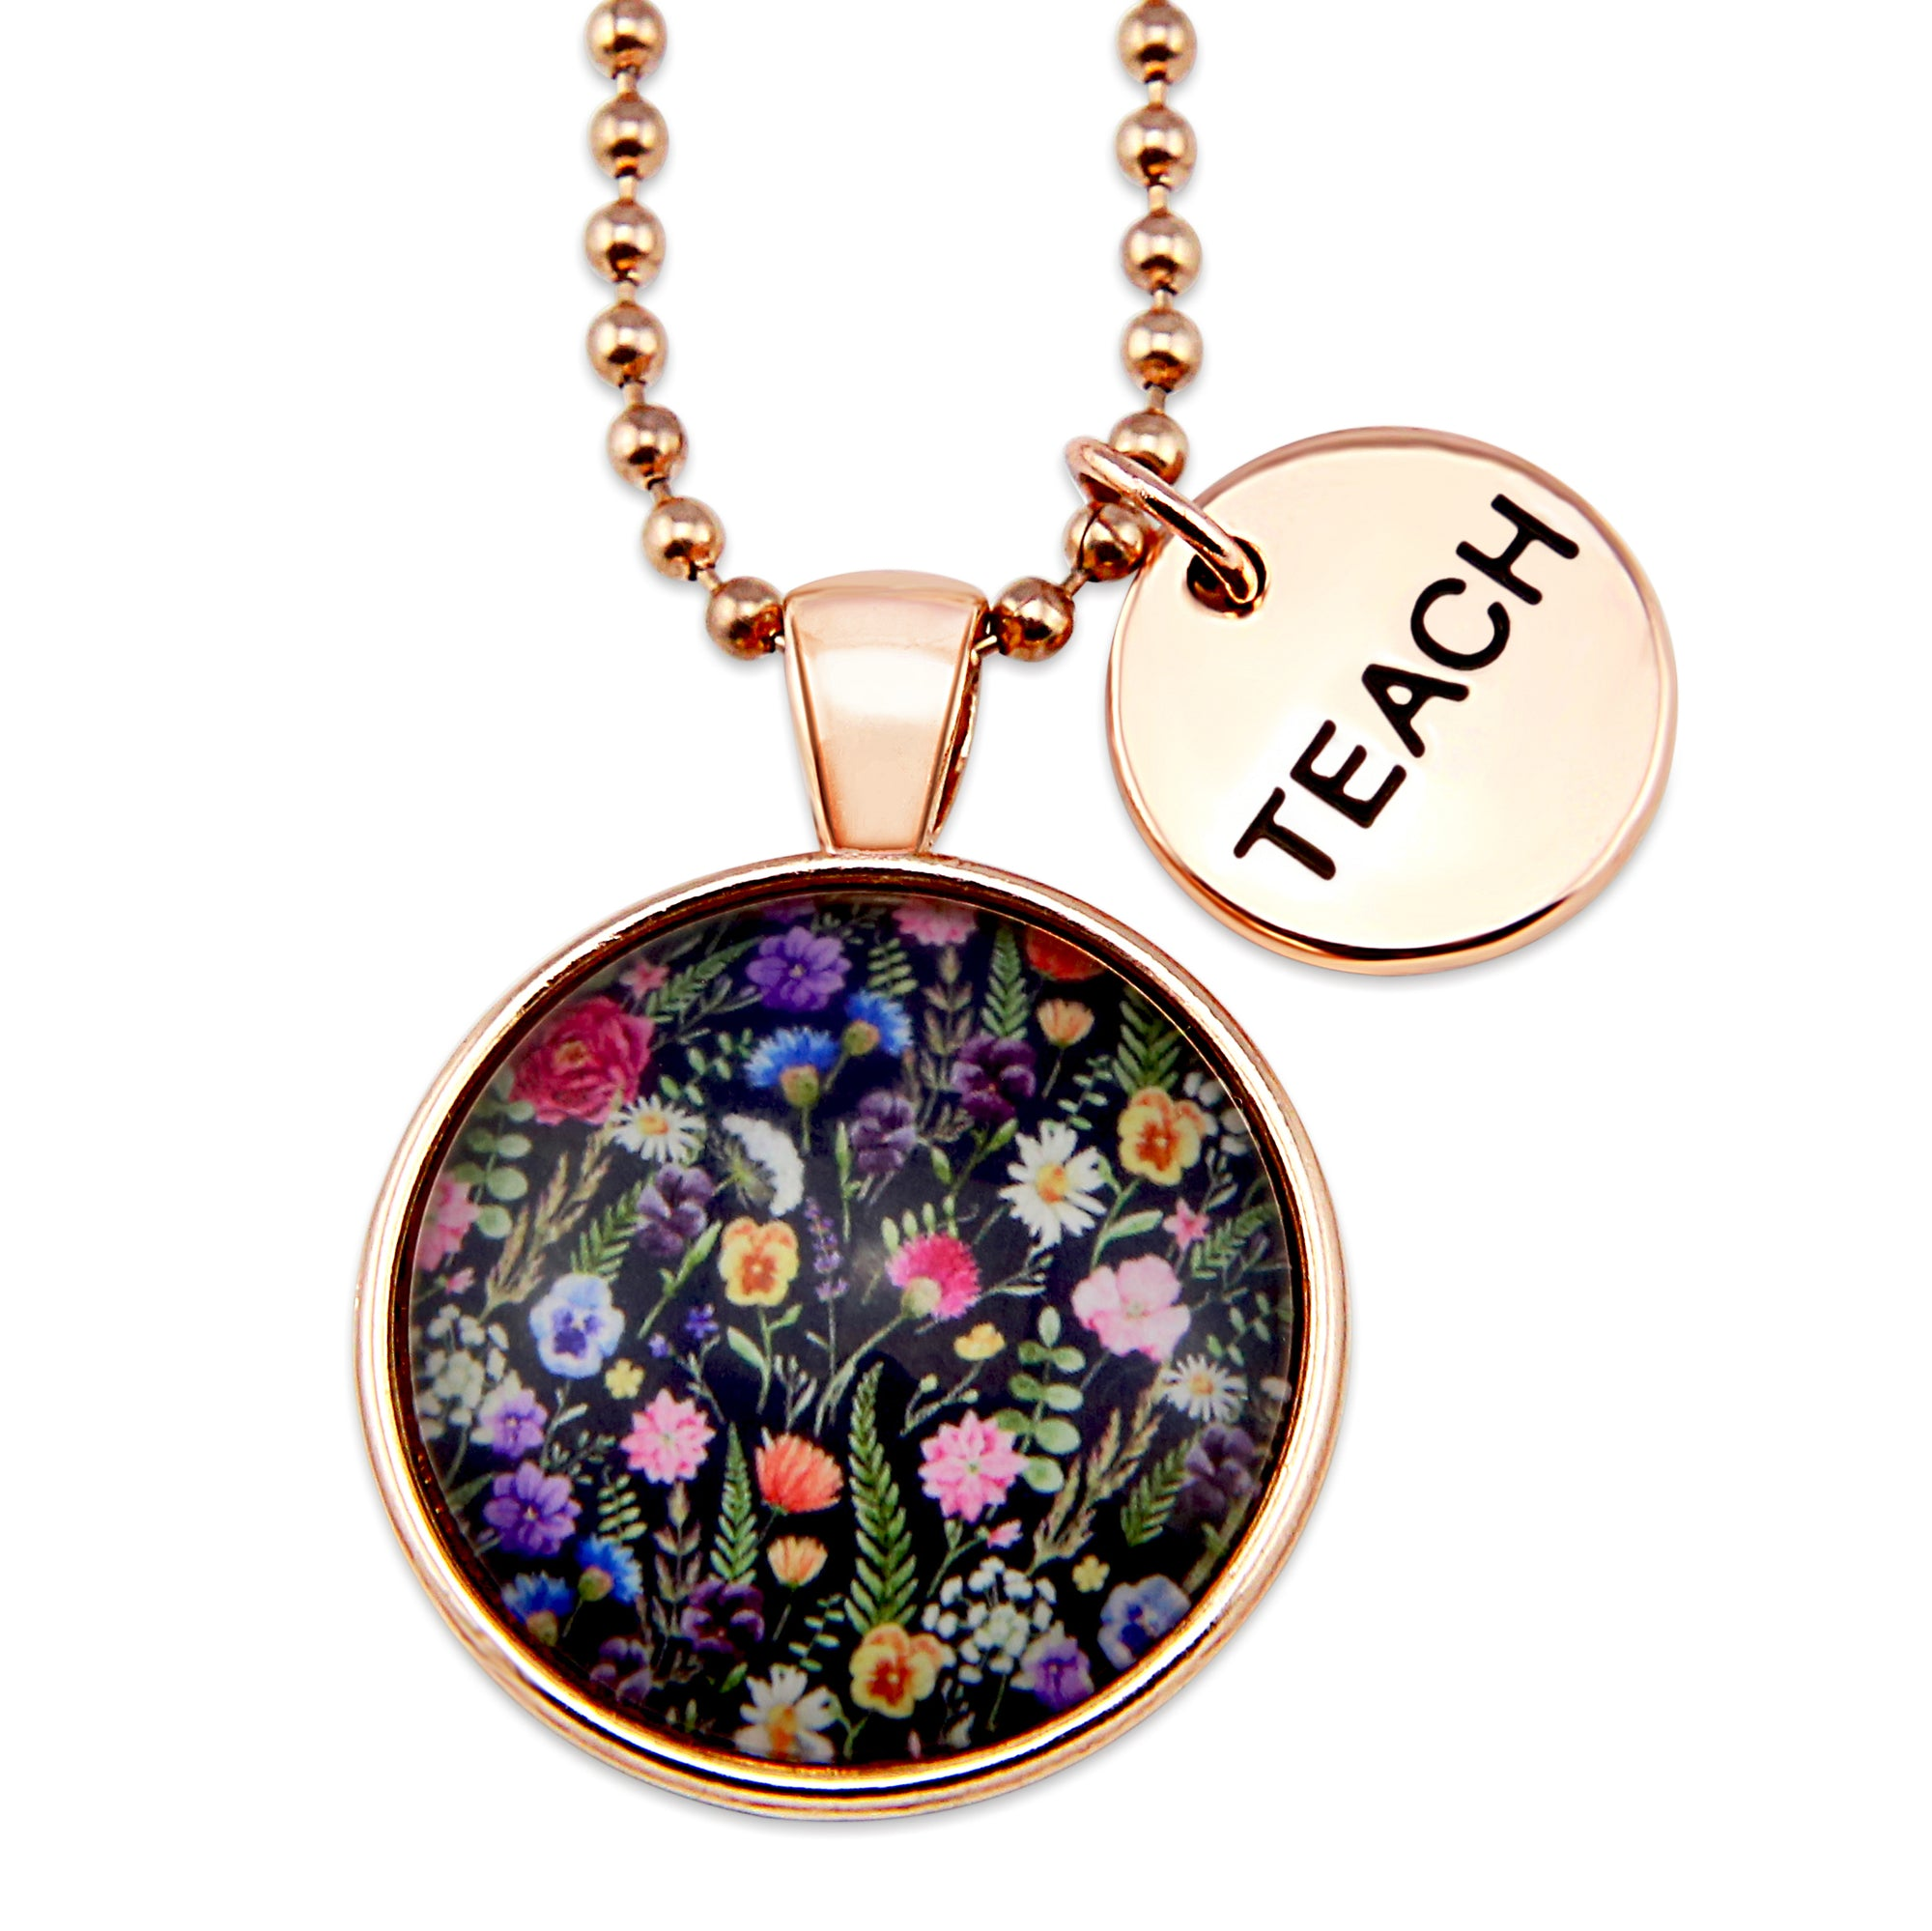 Wildflower Collection - Rose Gold 'TEACH' Necklace - Enchanted (11135)